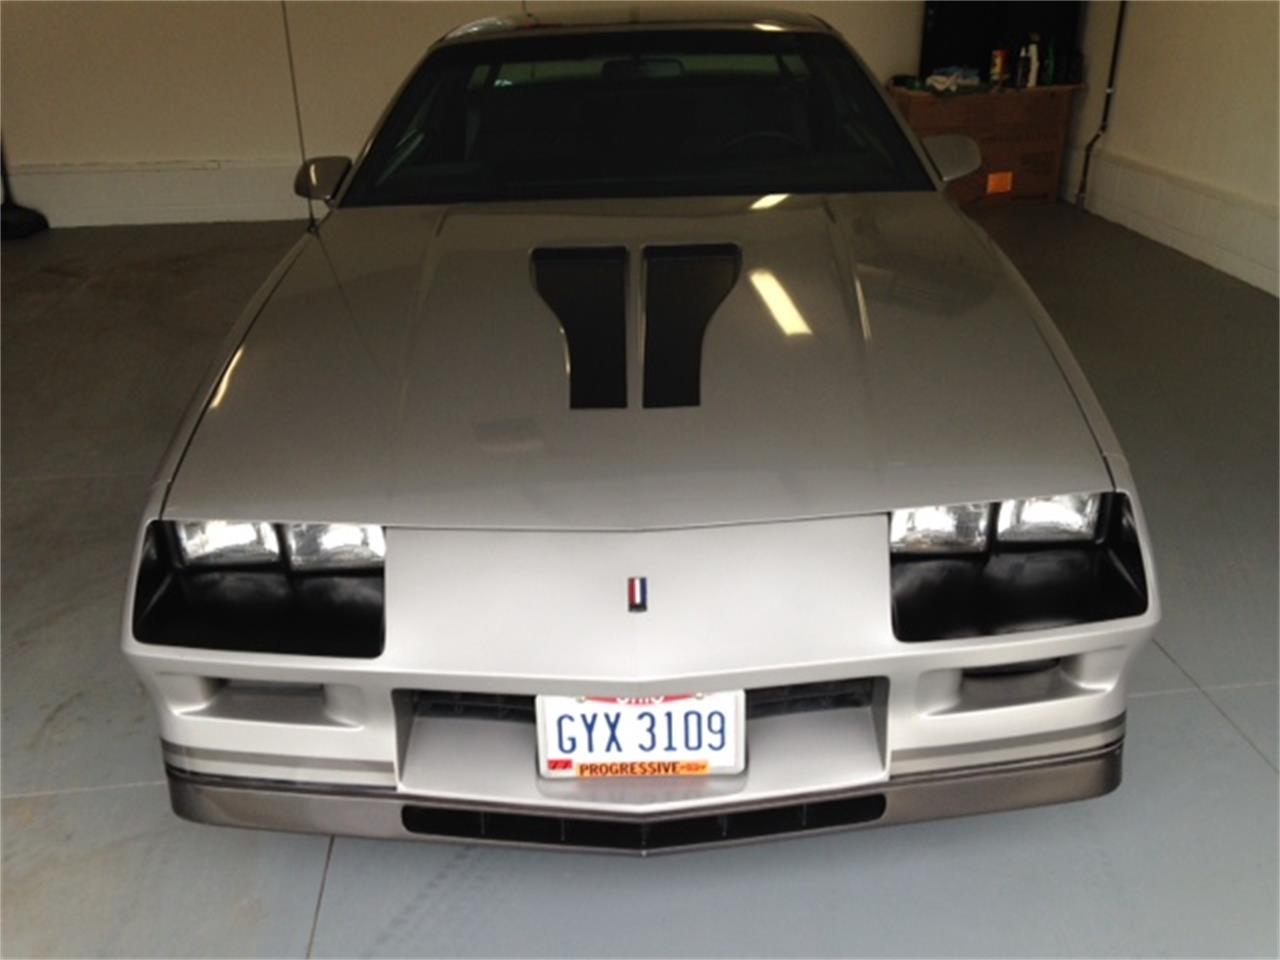 Large Picture of '84 Chevrolet Camaro Z28 - $13,000.00 Offered by a Private Seller - K8NU